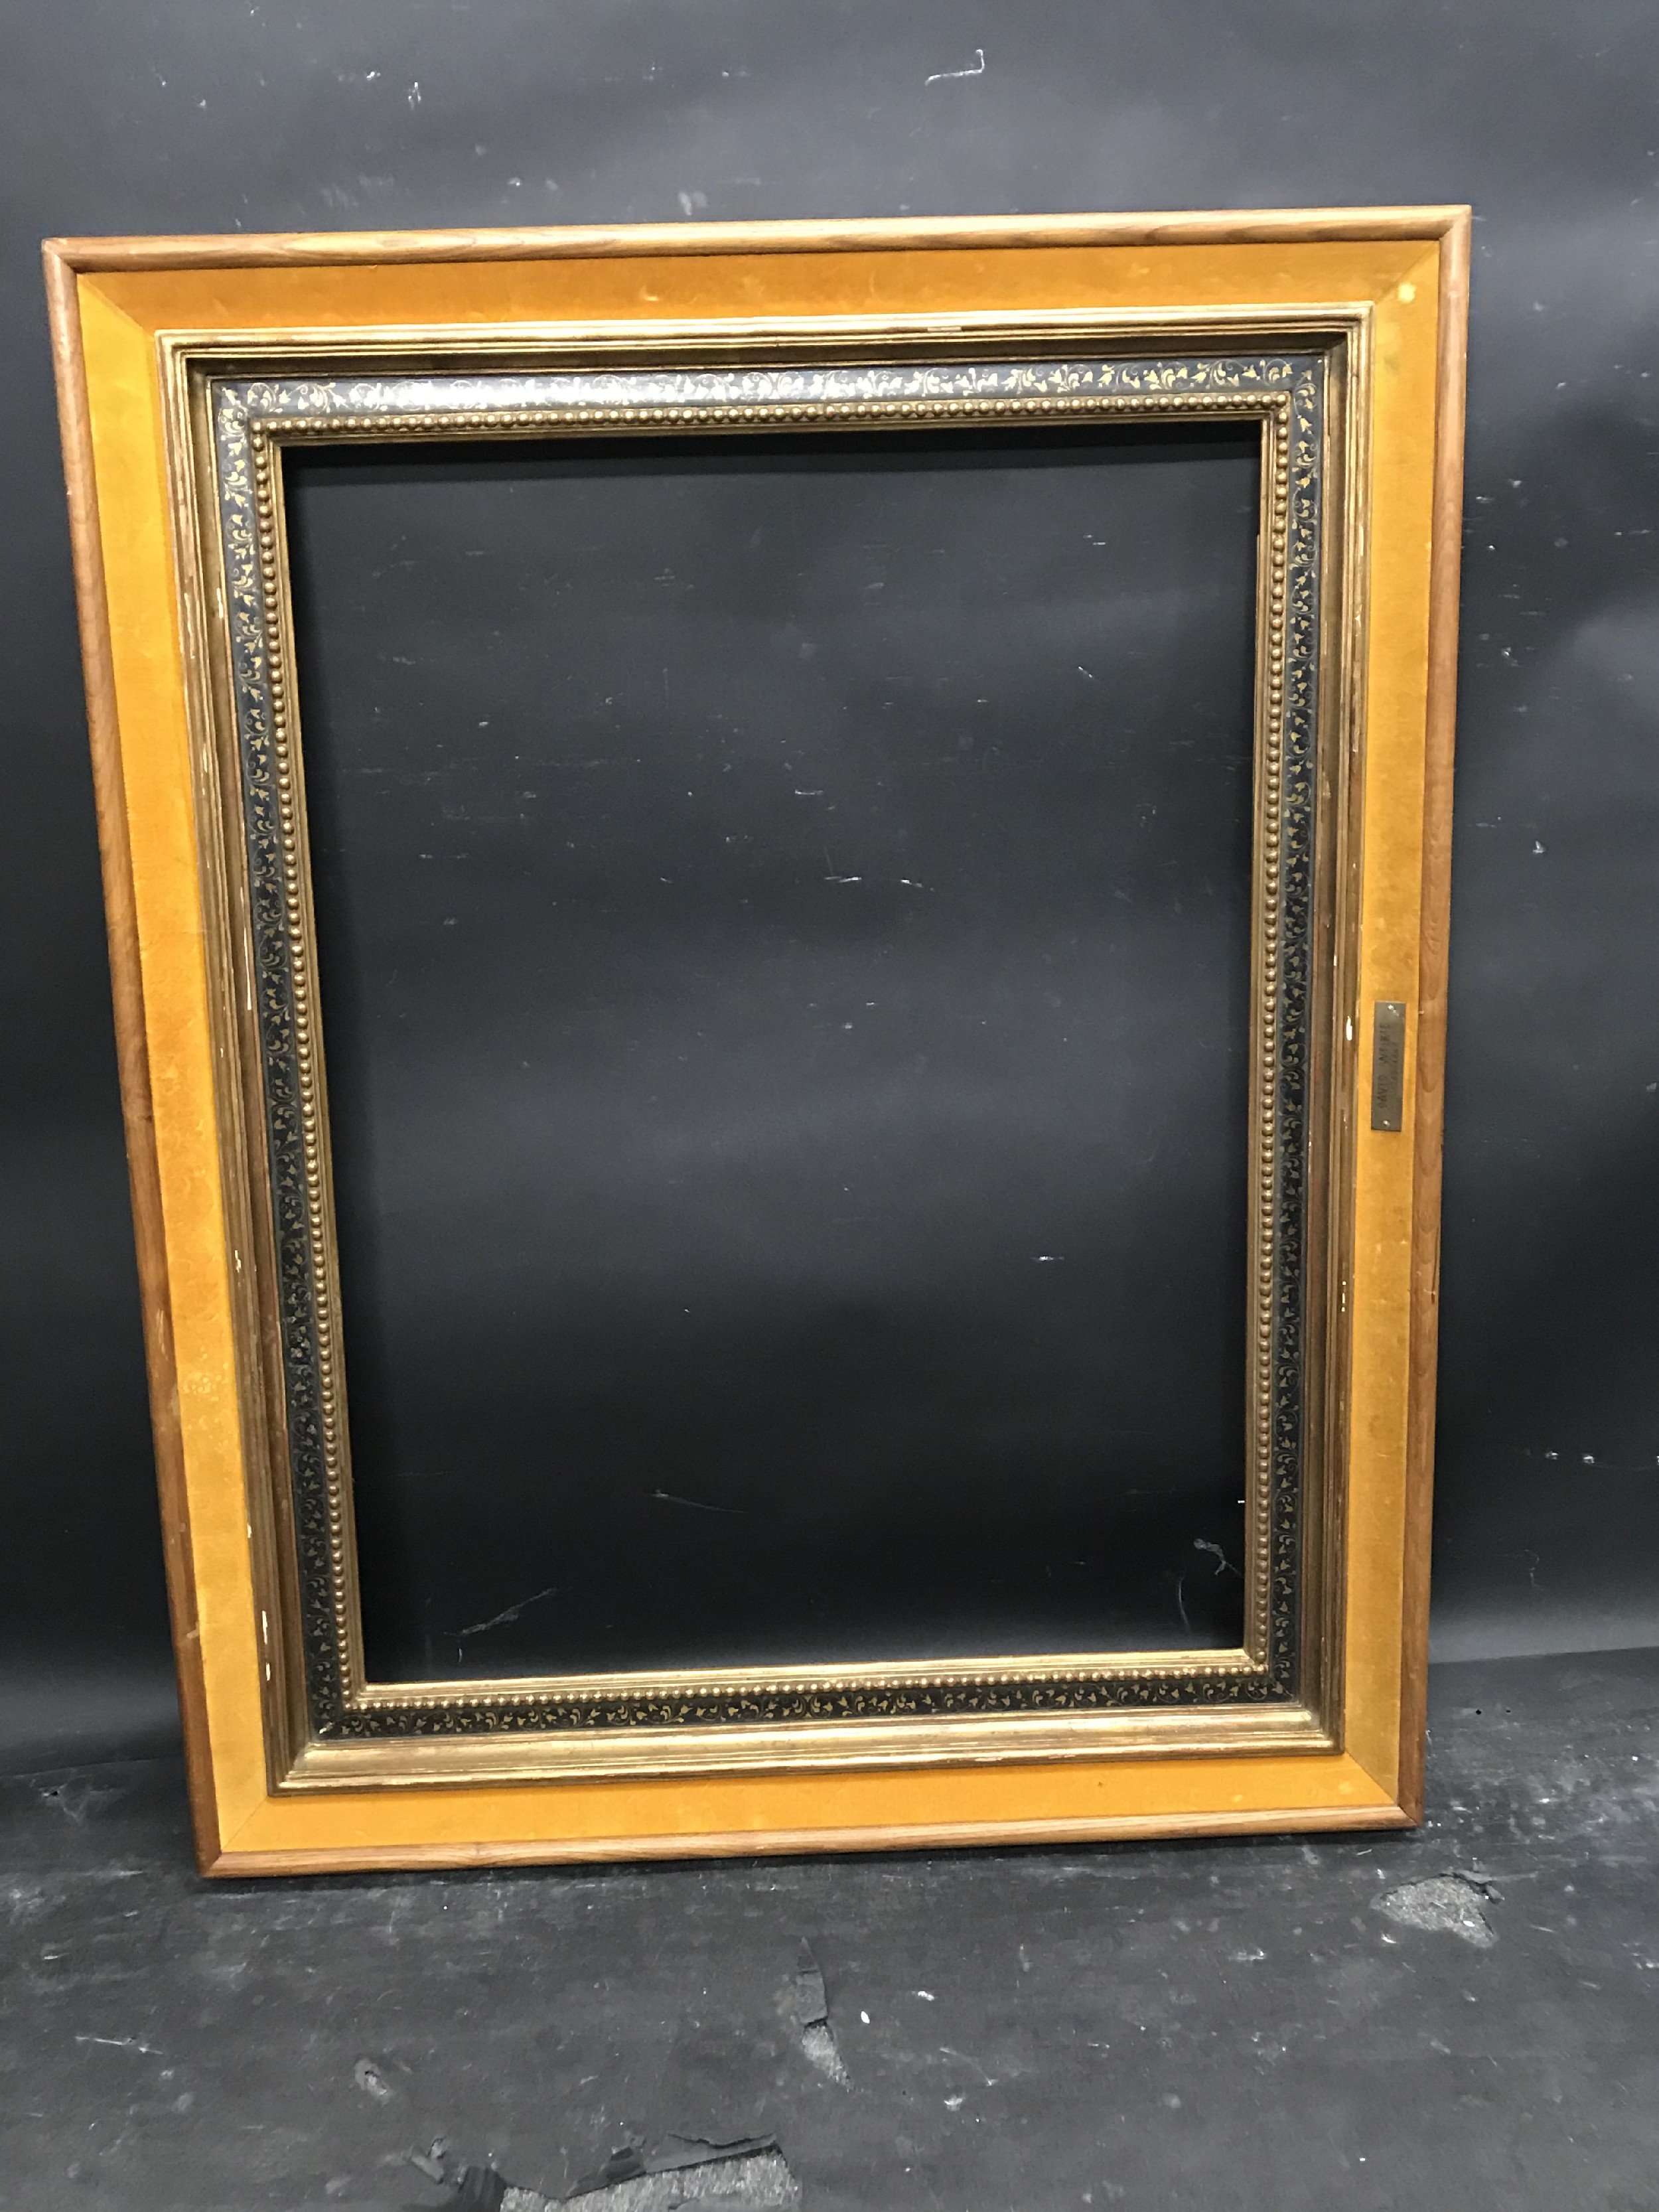 """Lot 57 - 20th Century English School. A Gilt and Black Frame, with a Fabric outer edge, 28"""" x 21"""" (rebate)."""